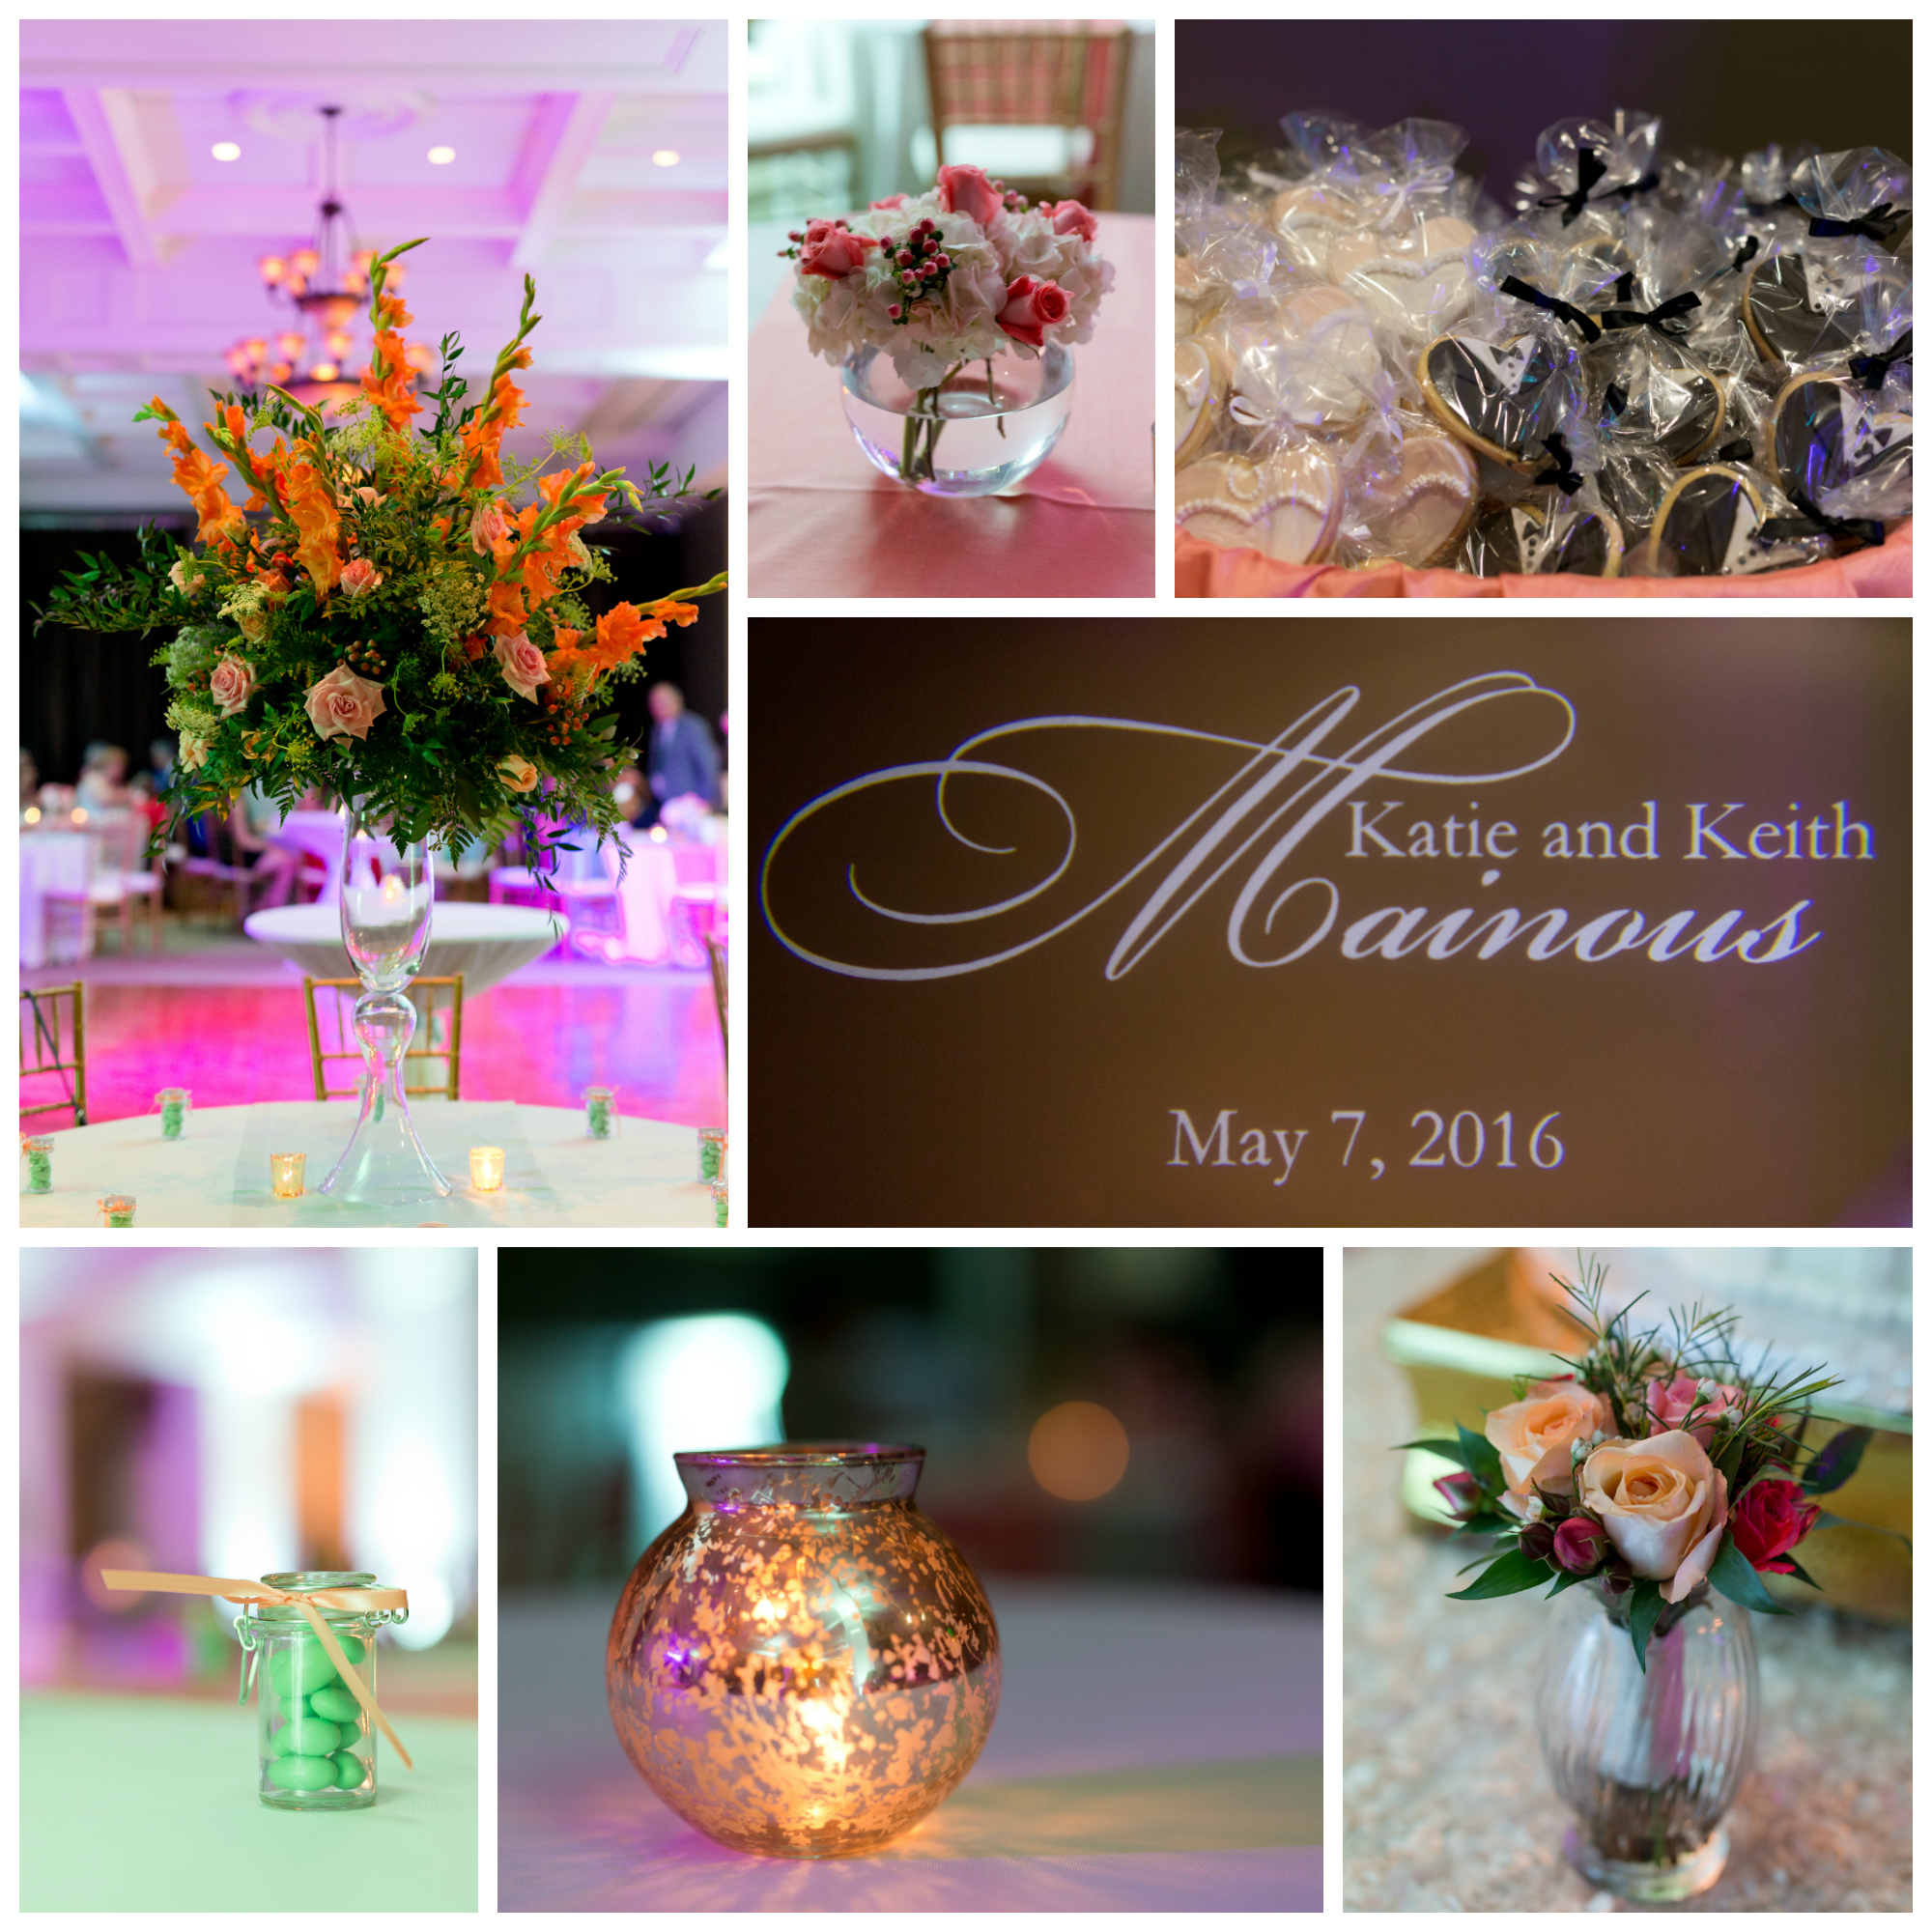 wedding reception decorations (floral centerpieces, candy favors, candles, cookies)